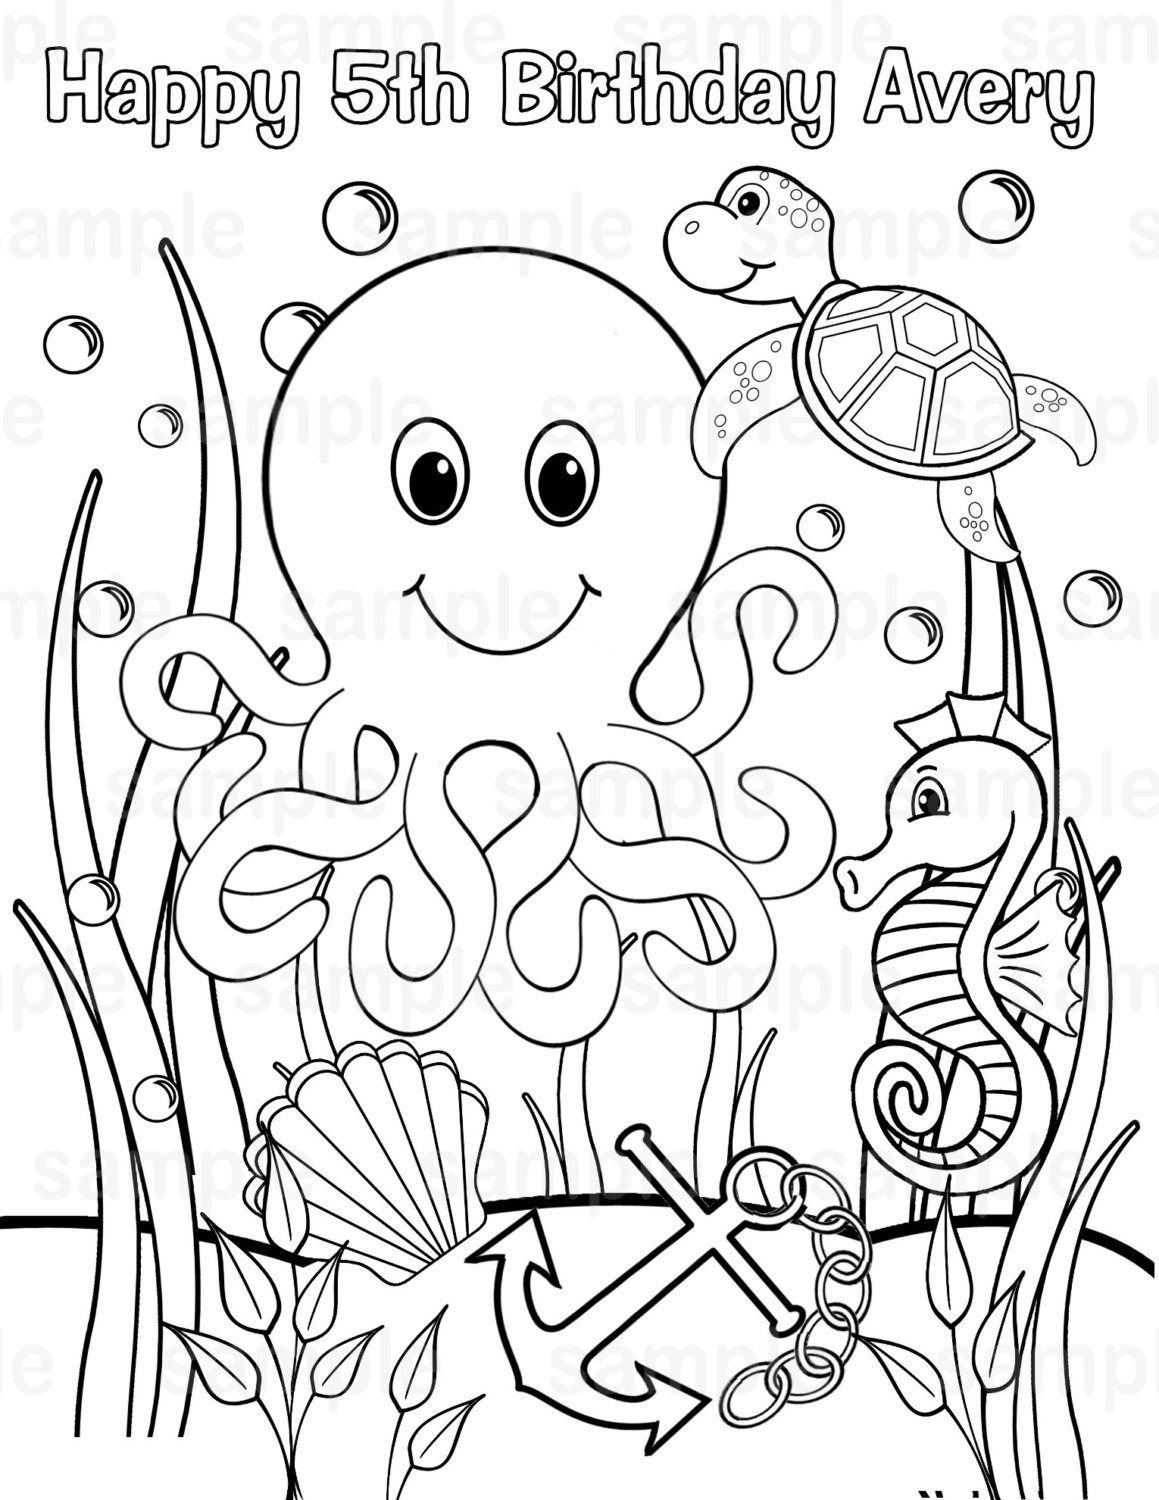 coloring pages of the ocean - photo#36